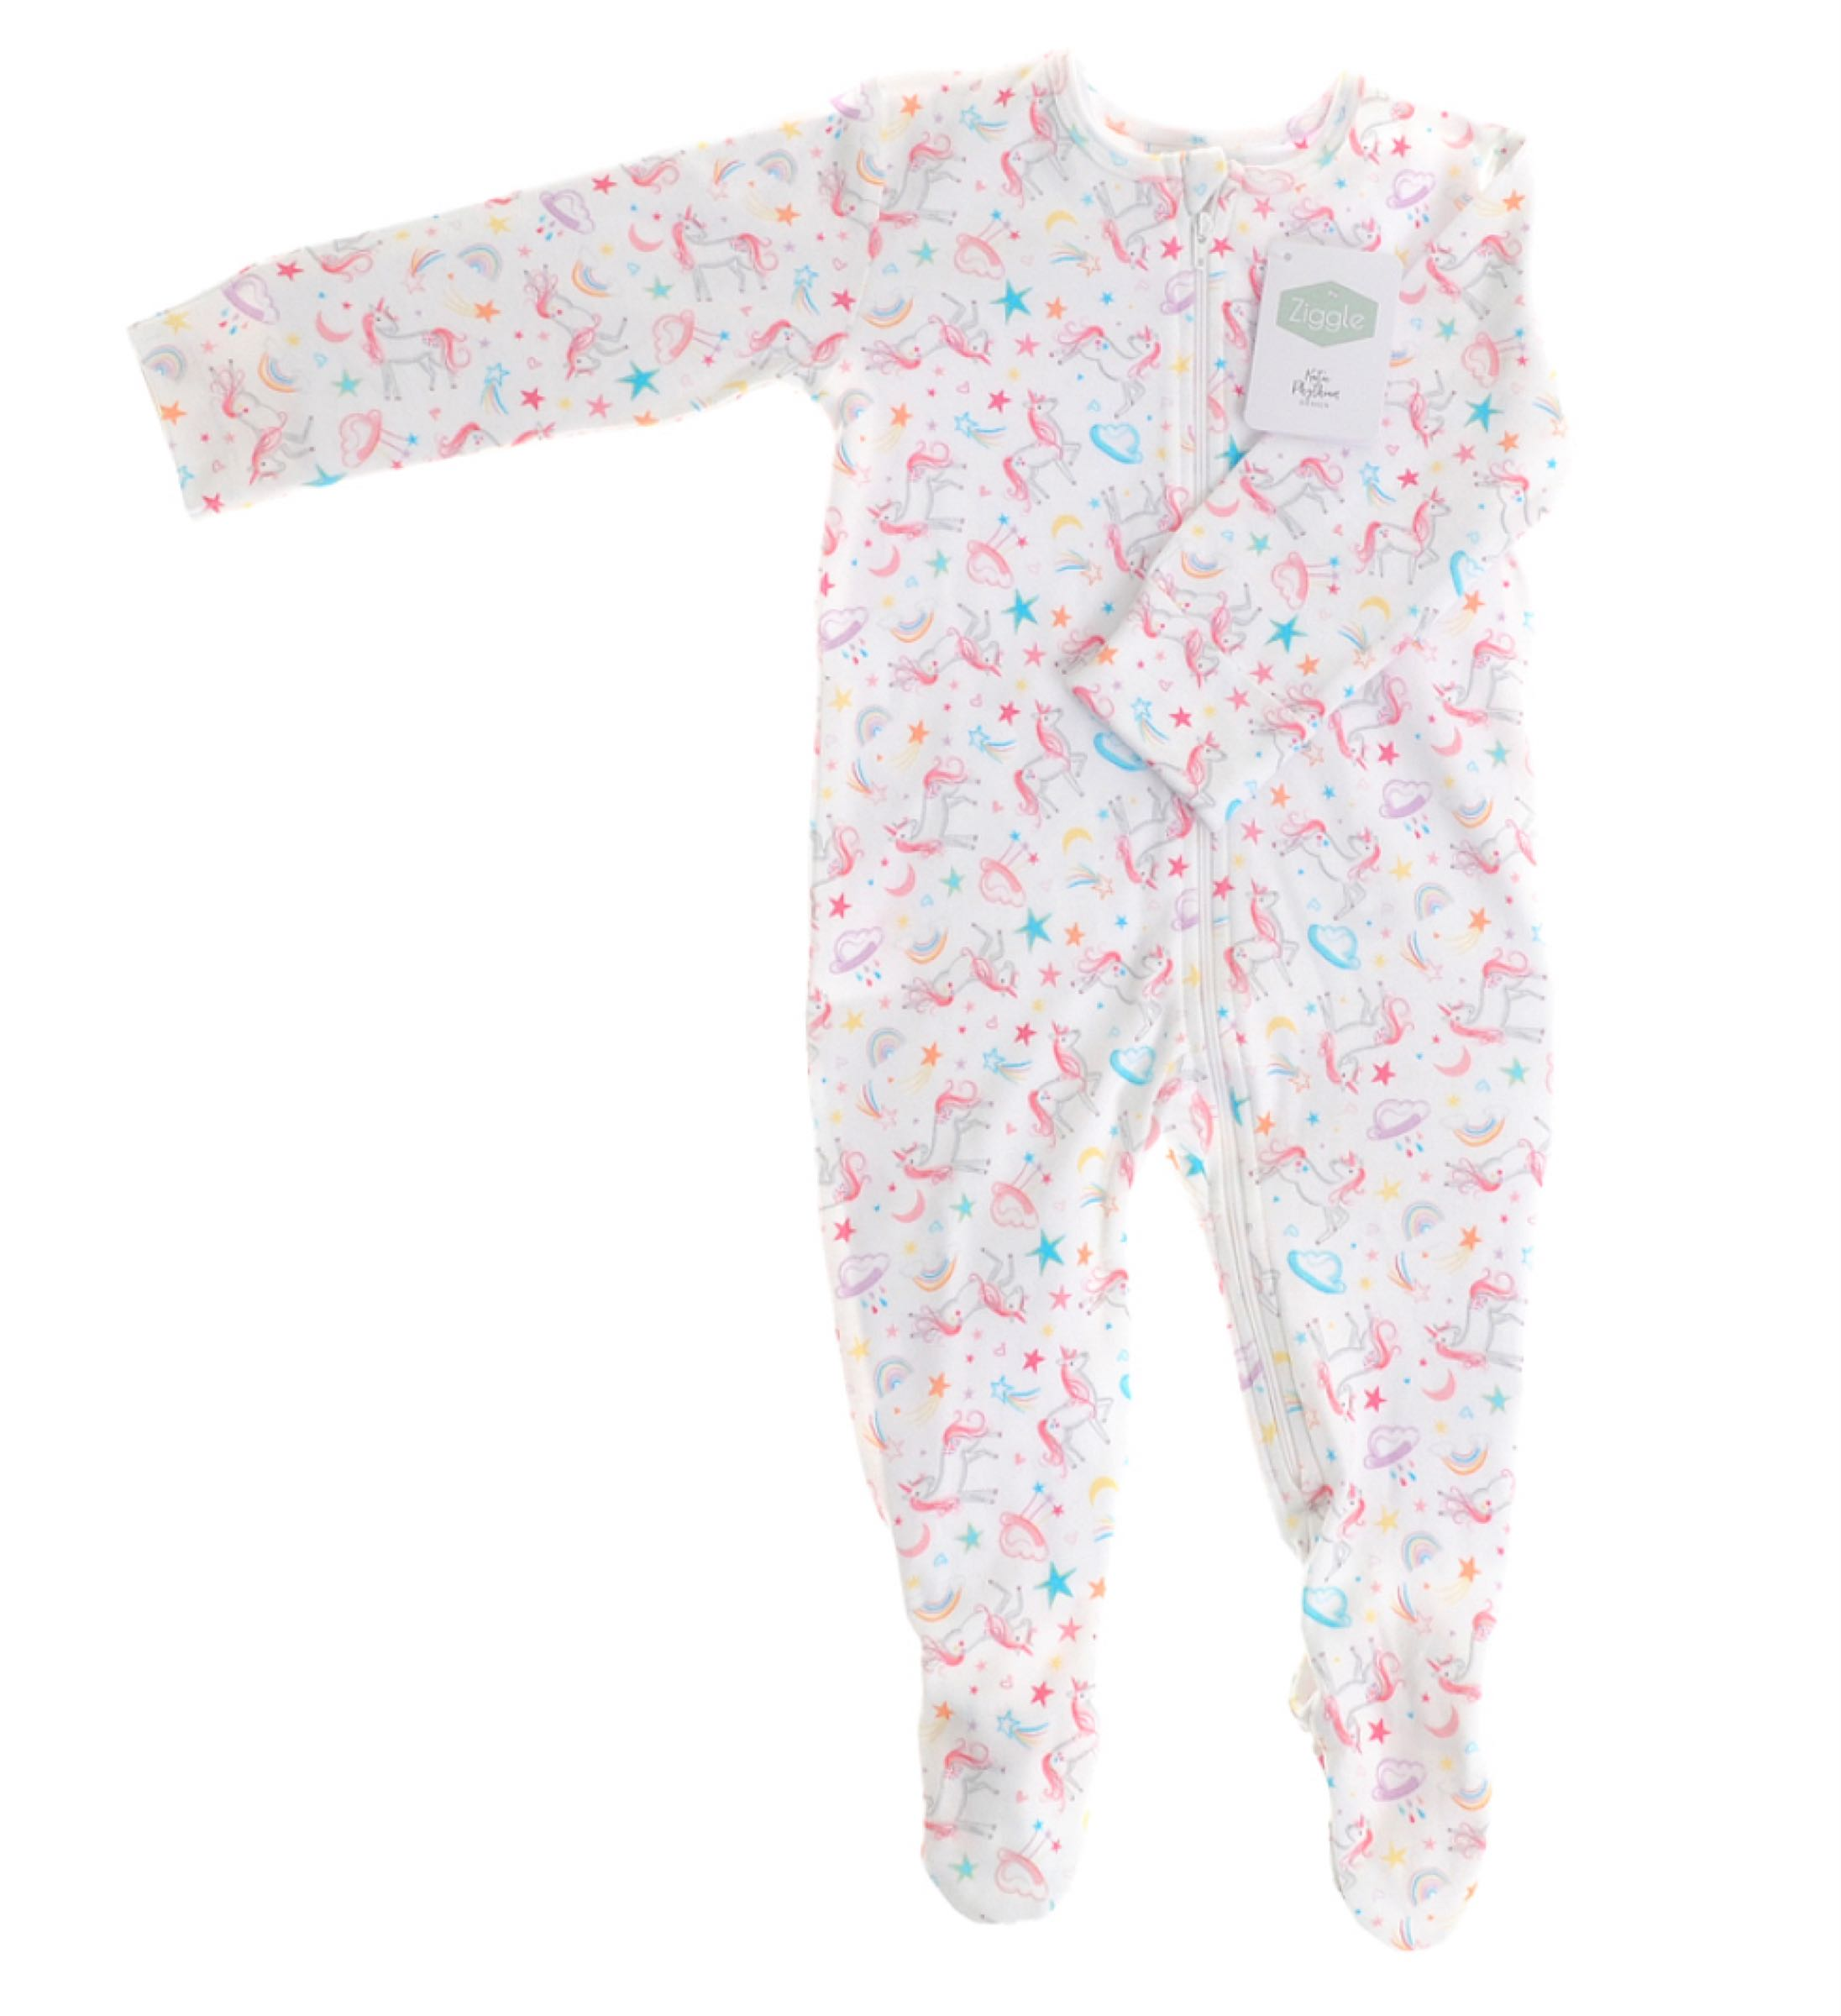 Ziggle Lilybelle Unicorn Zipped All-in-one by Katie Phythian  6-12 months